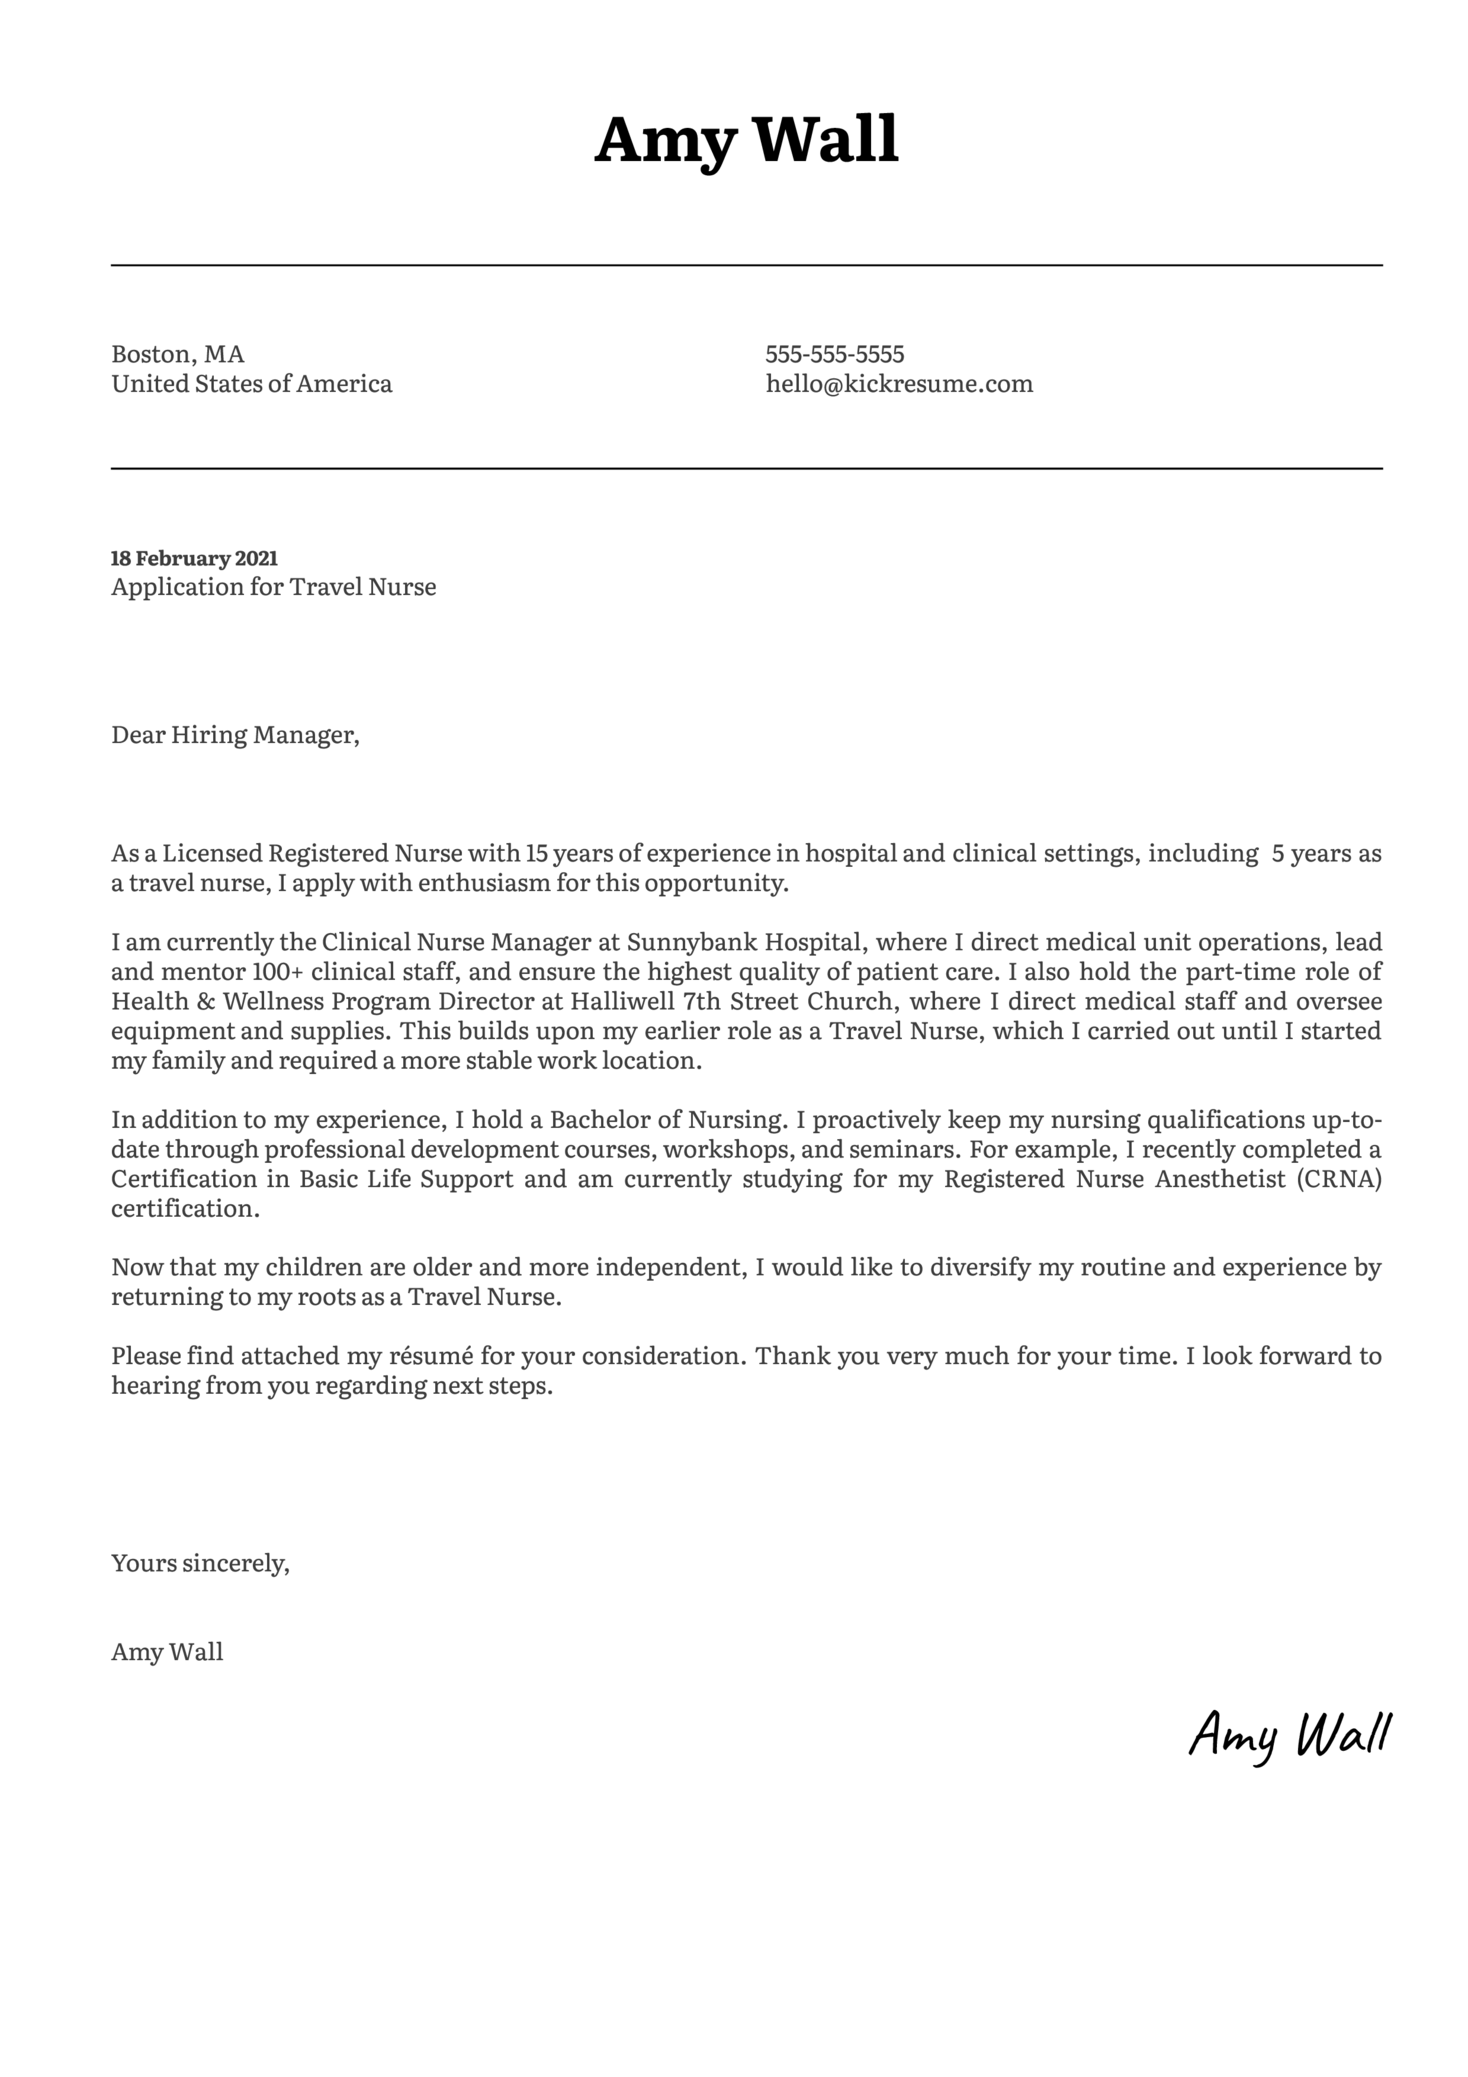 Travel Nurse Cover Letter Template